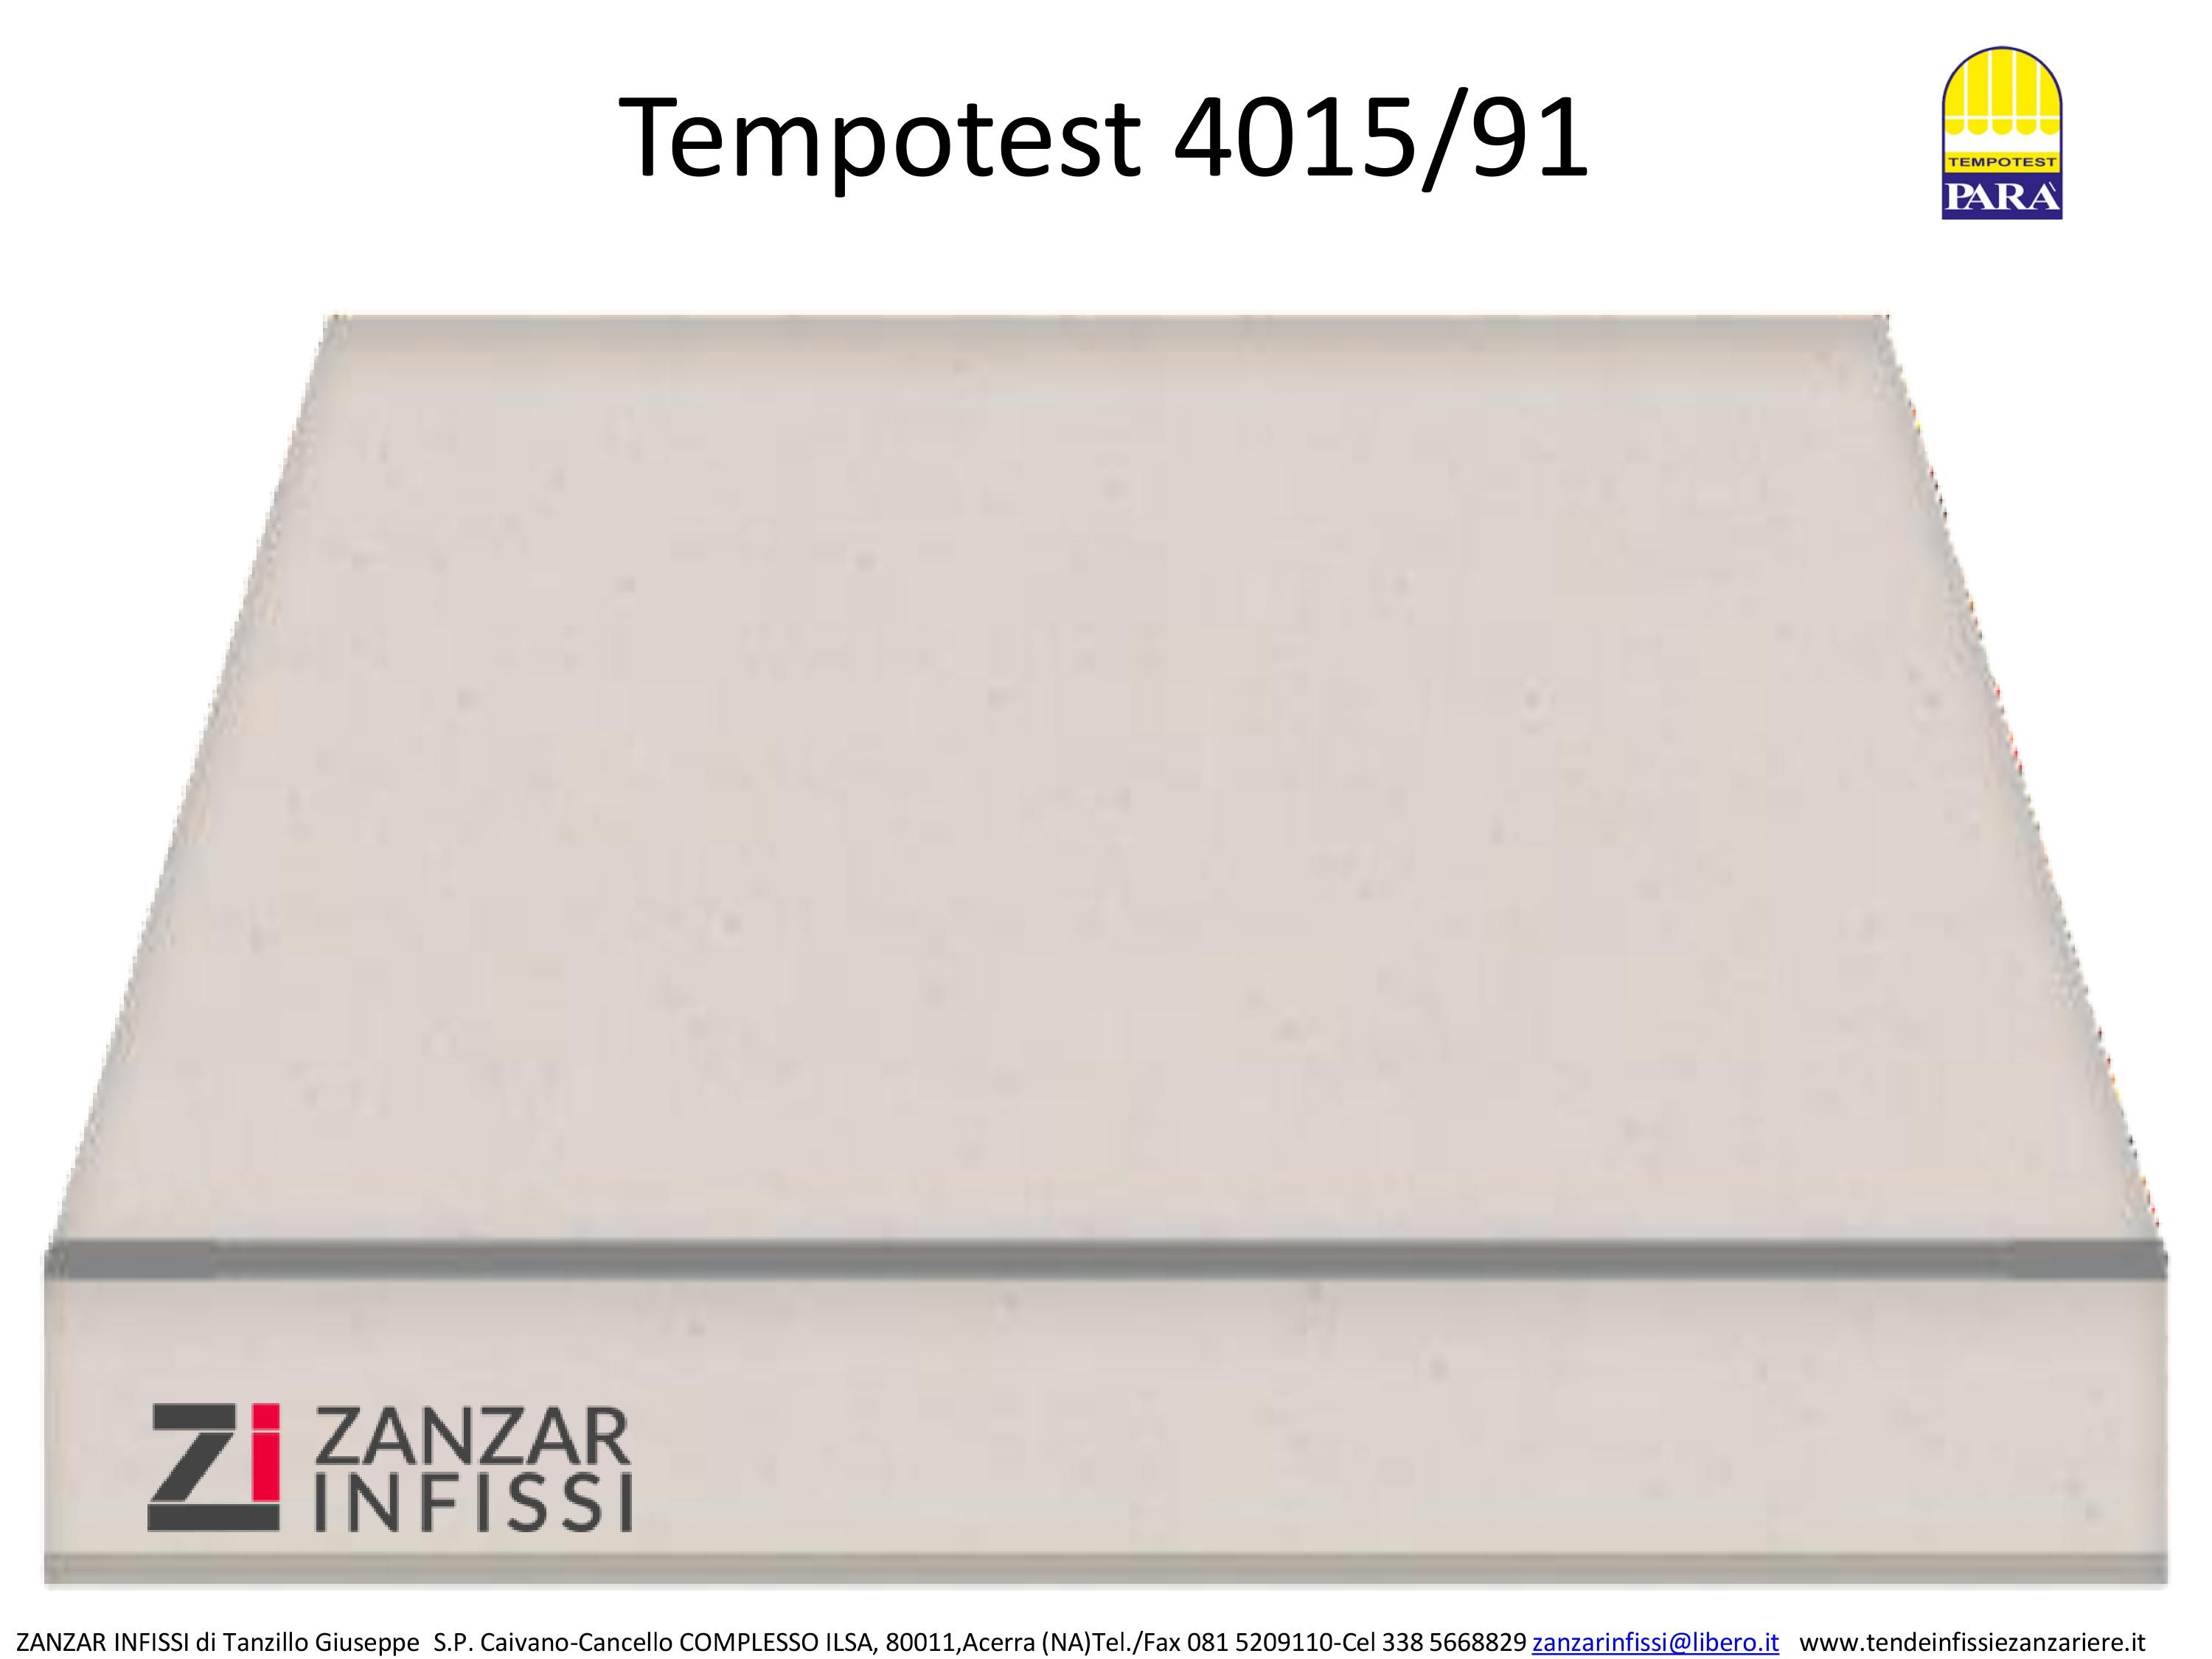 Tempotest 4015/91